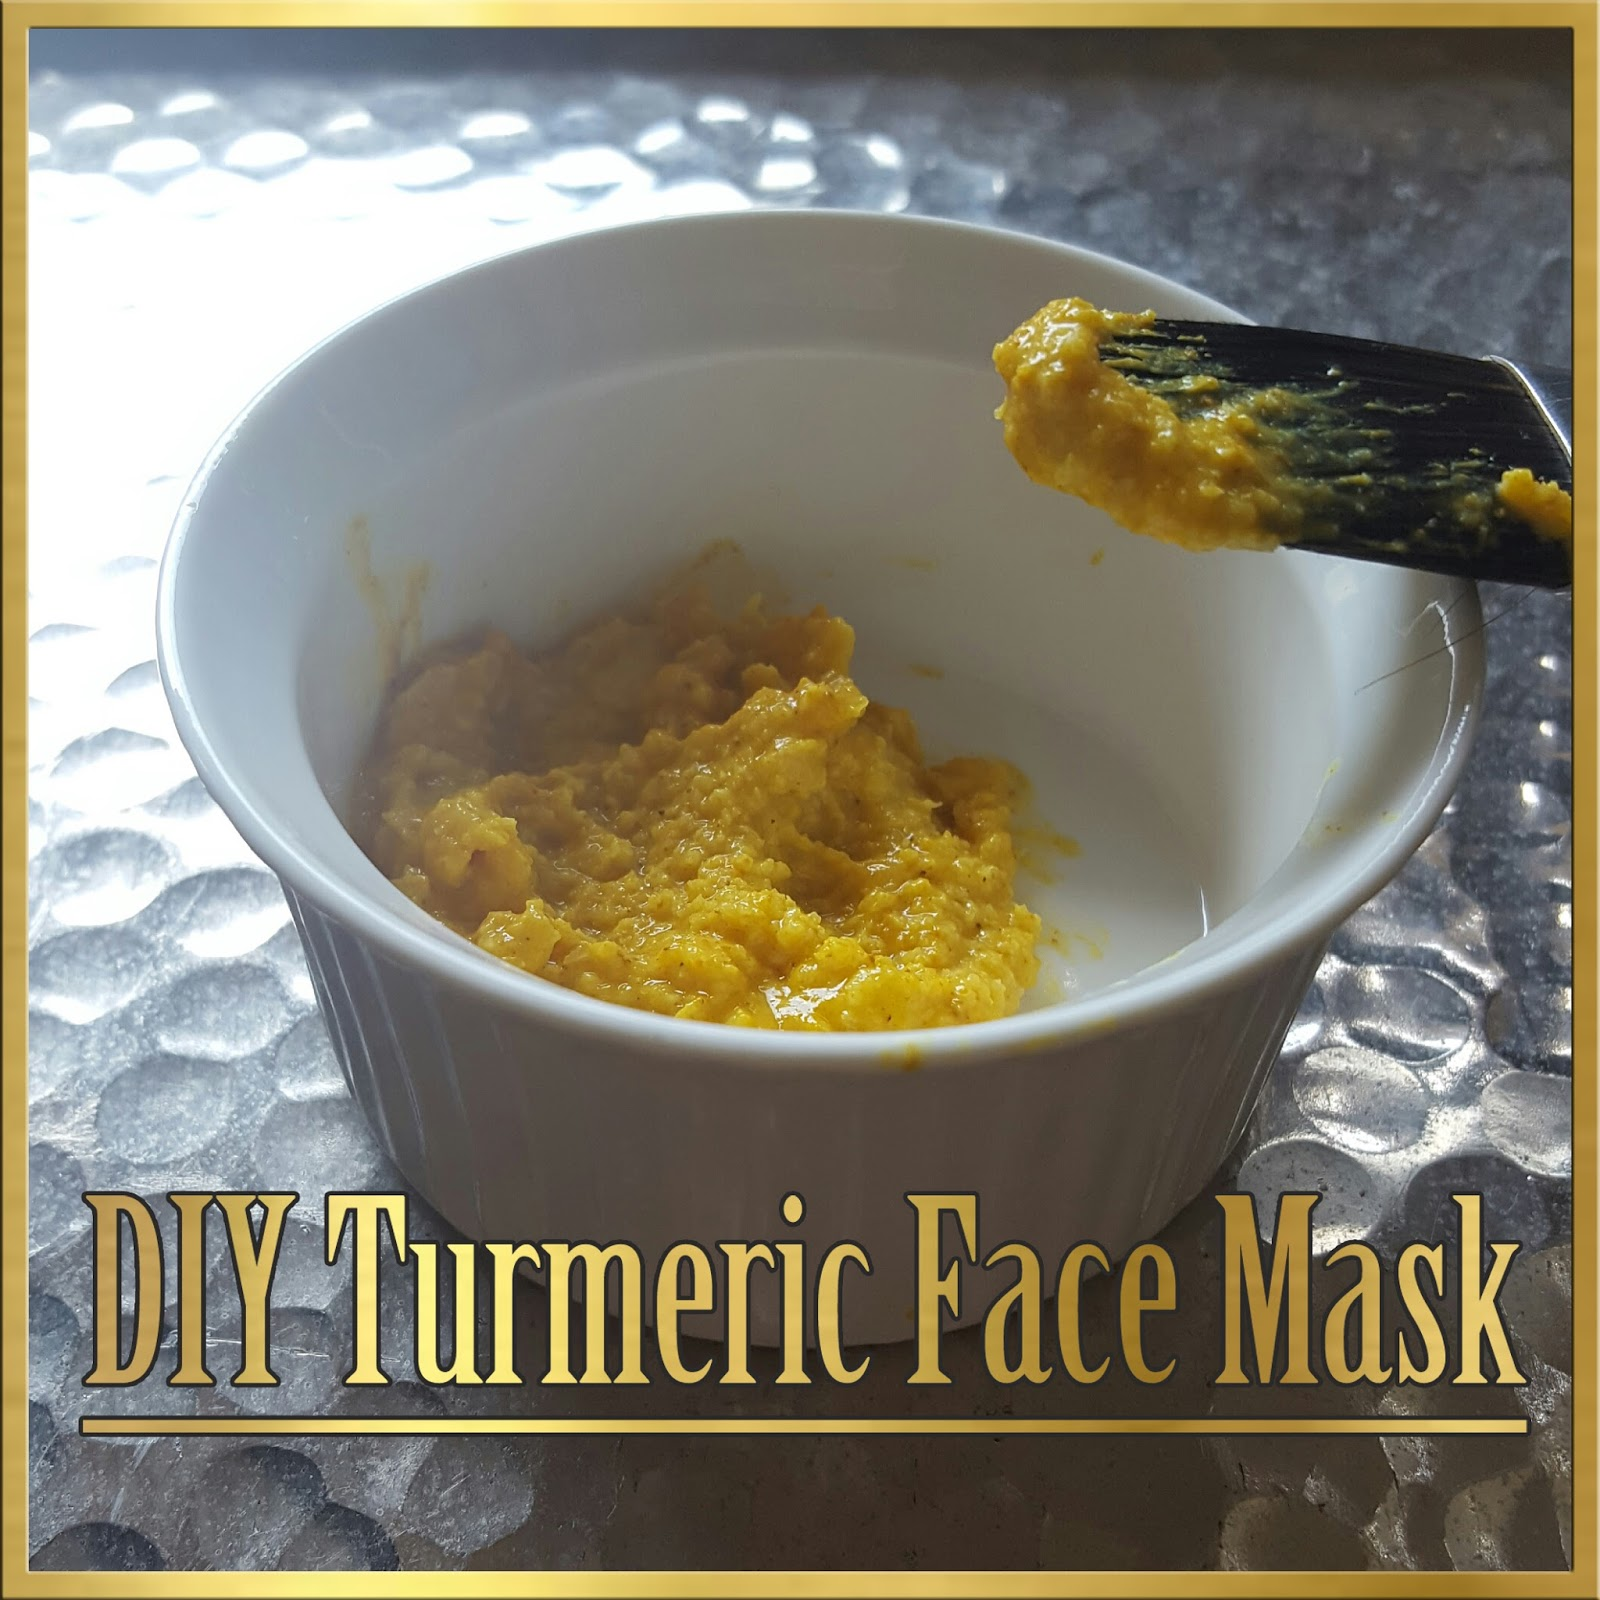 DIY turmeric face mask